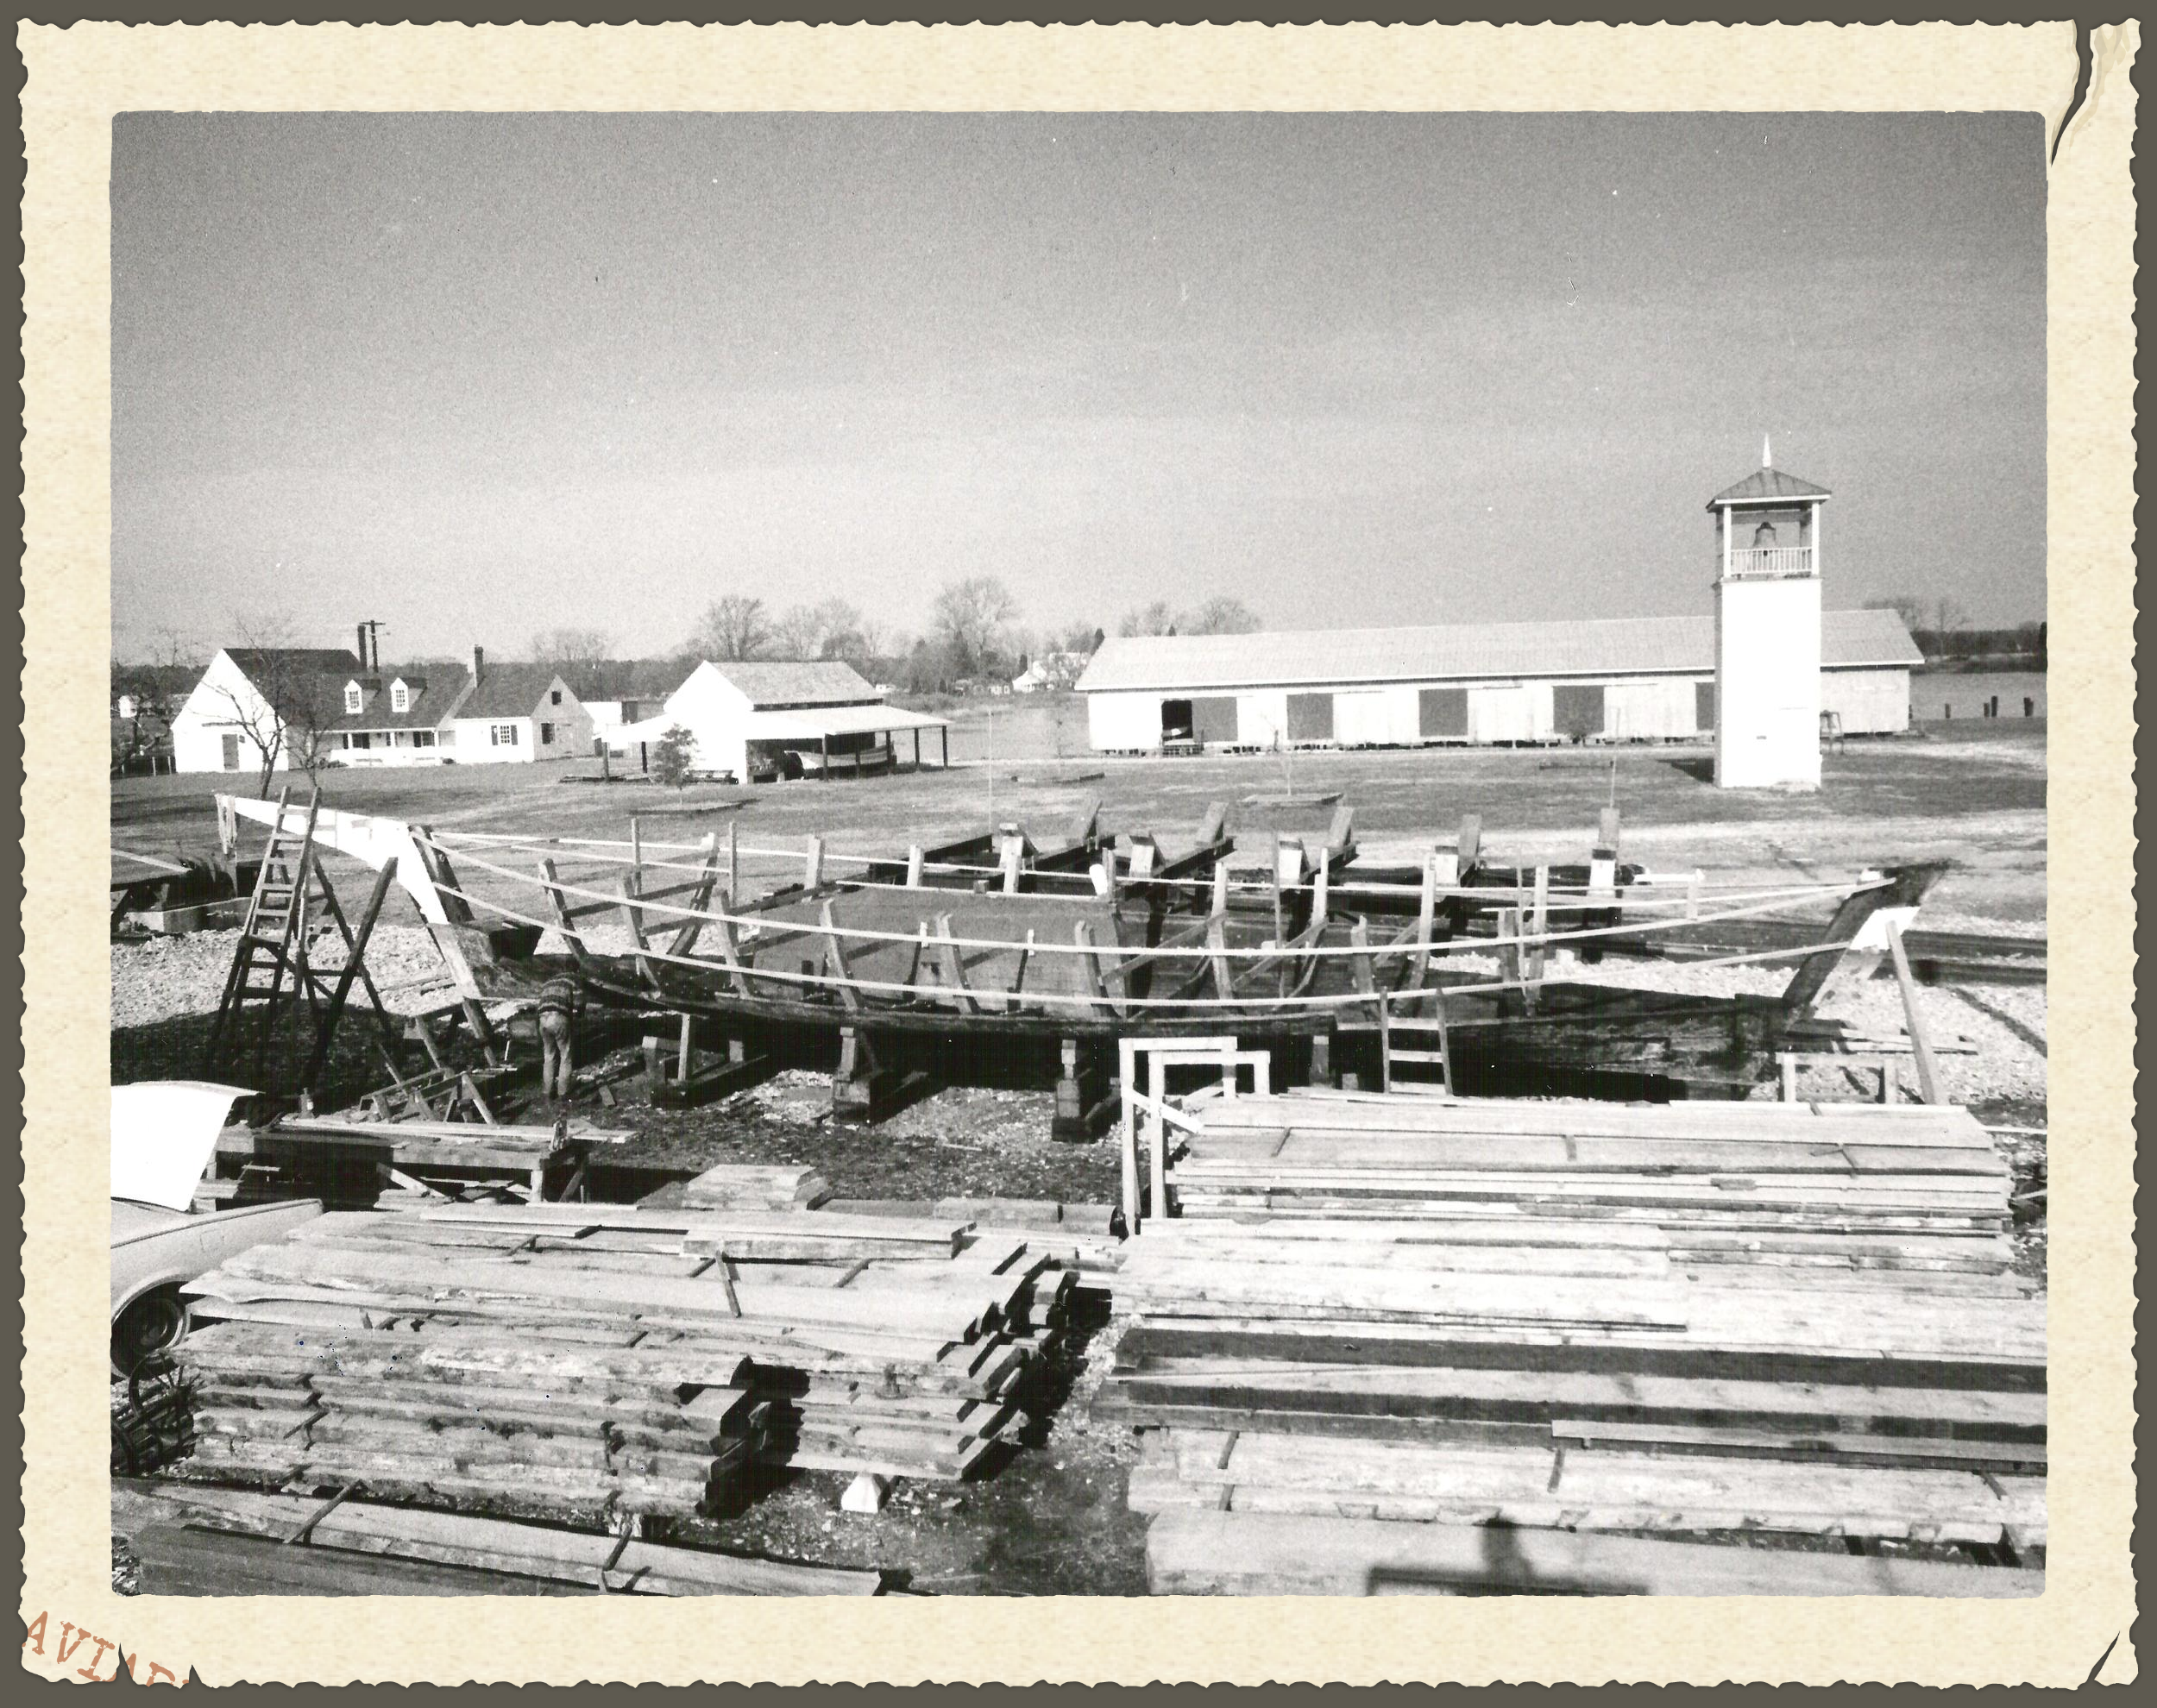 The  Edna E. Lockwood  underwent a restoration at the Chesapeake Bay Maritime Museum in 1975. Photo Credit:C. C. Harris